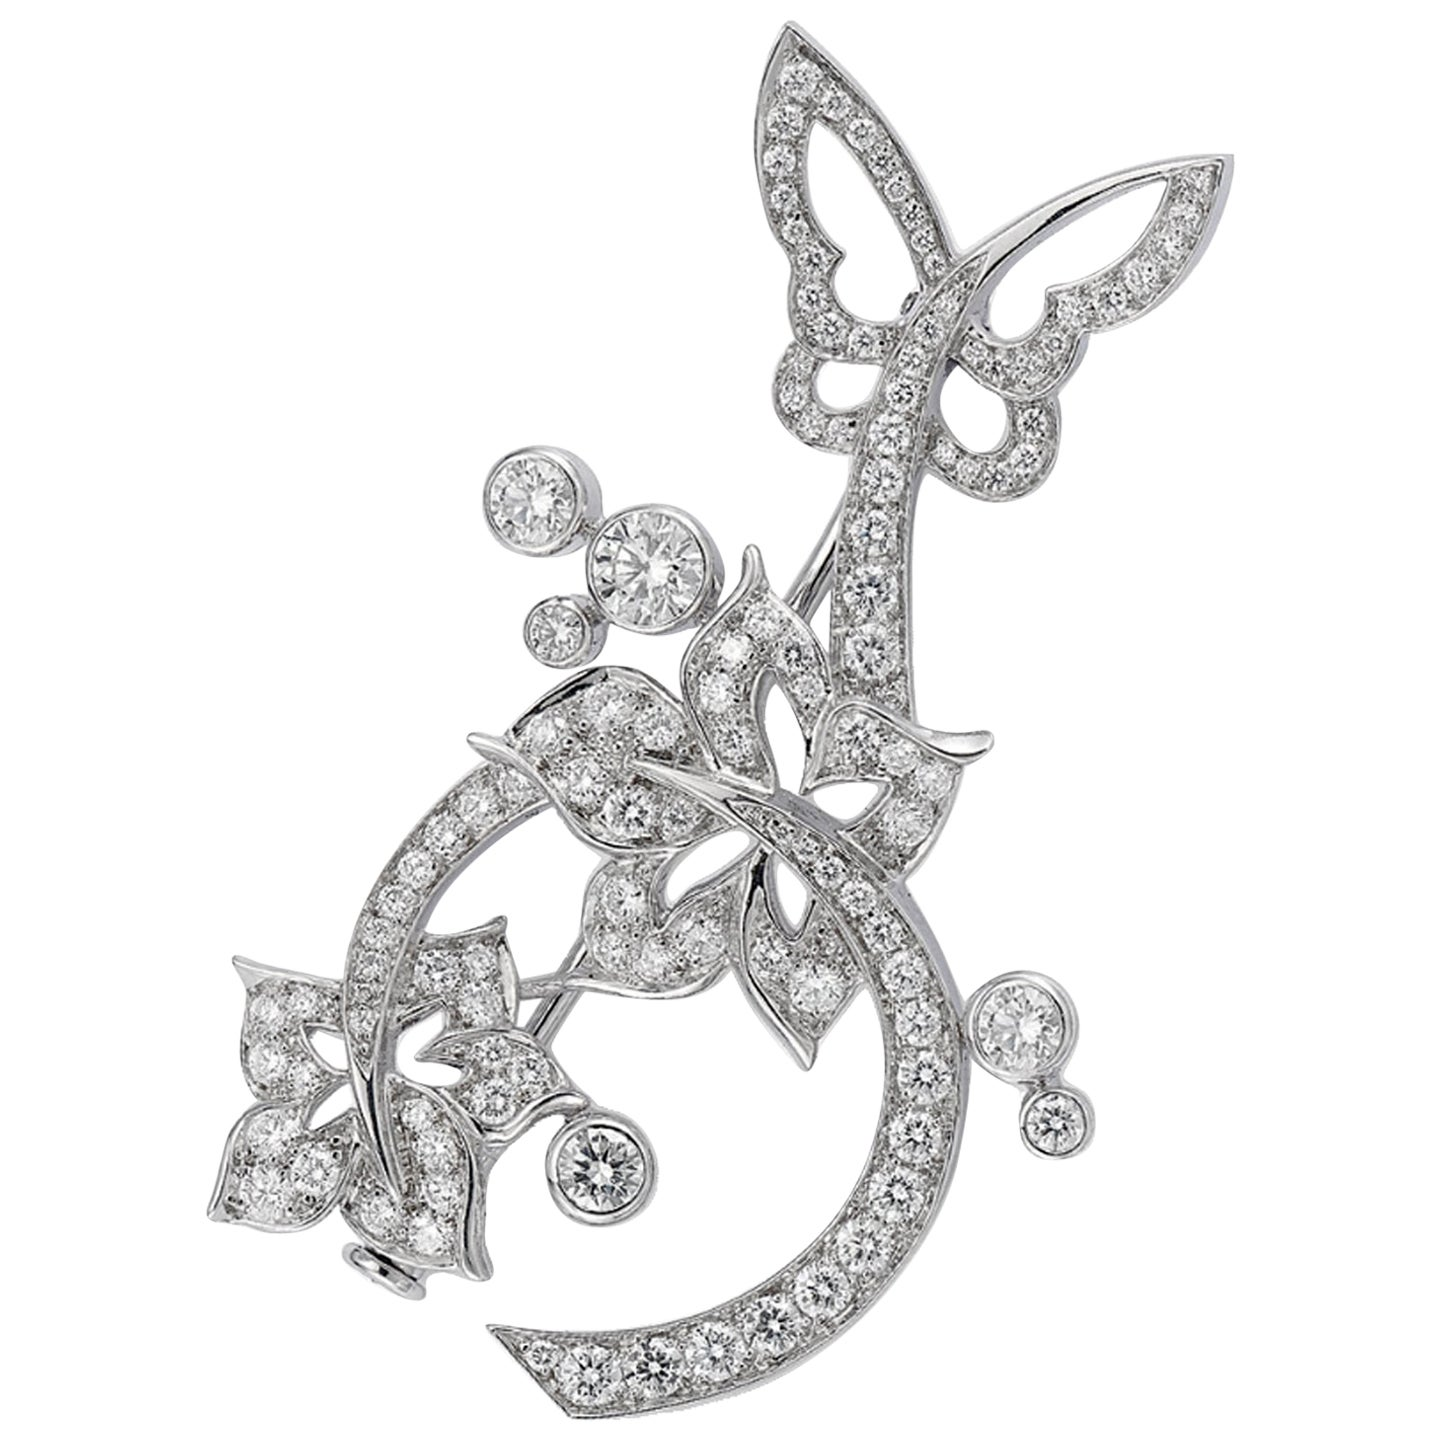 Van Cleef & Arpels Butterfly Diamond White Gold Brooch Necklace